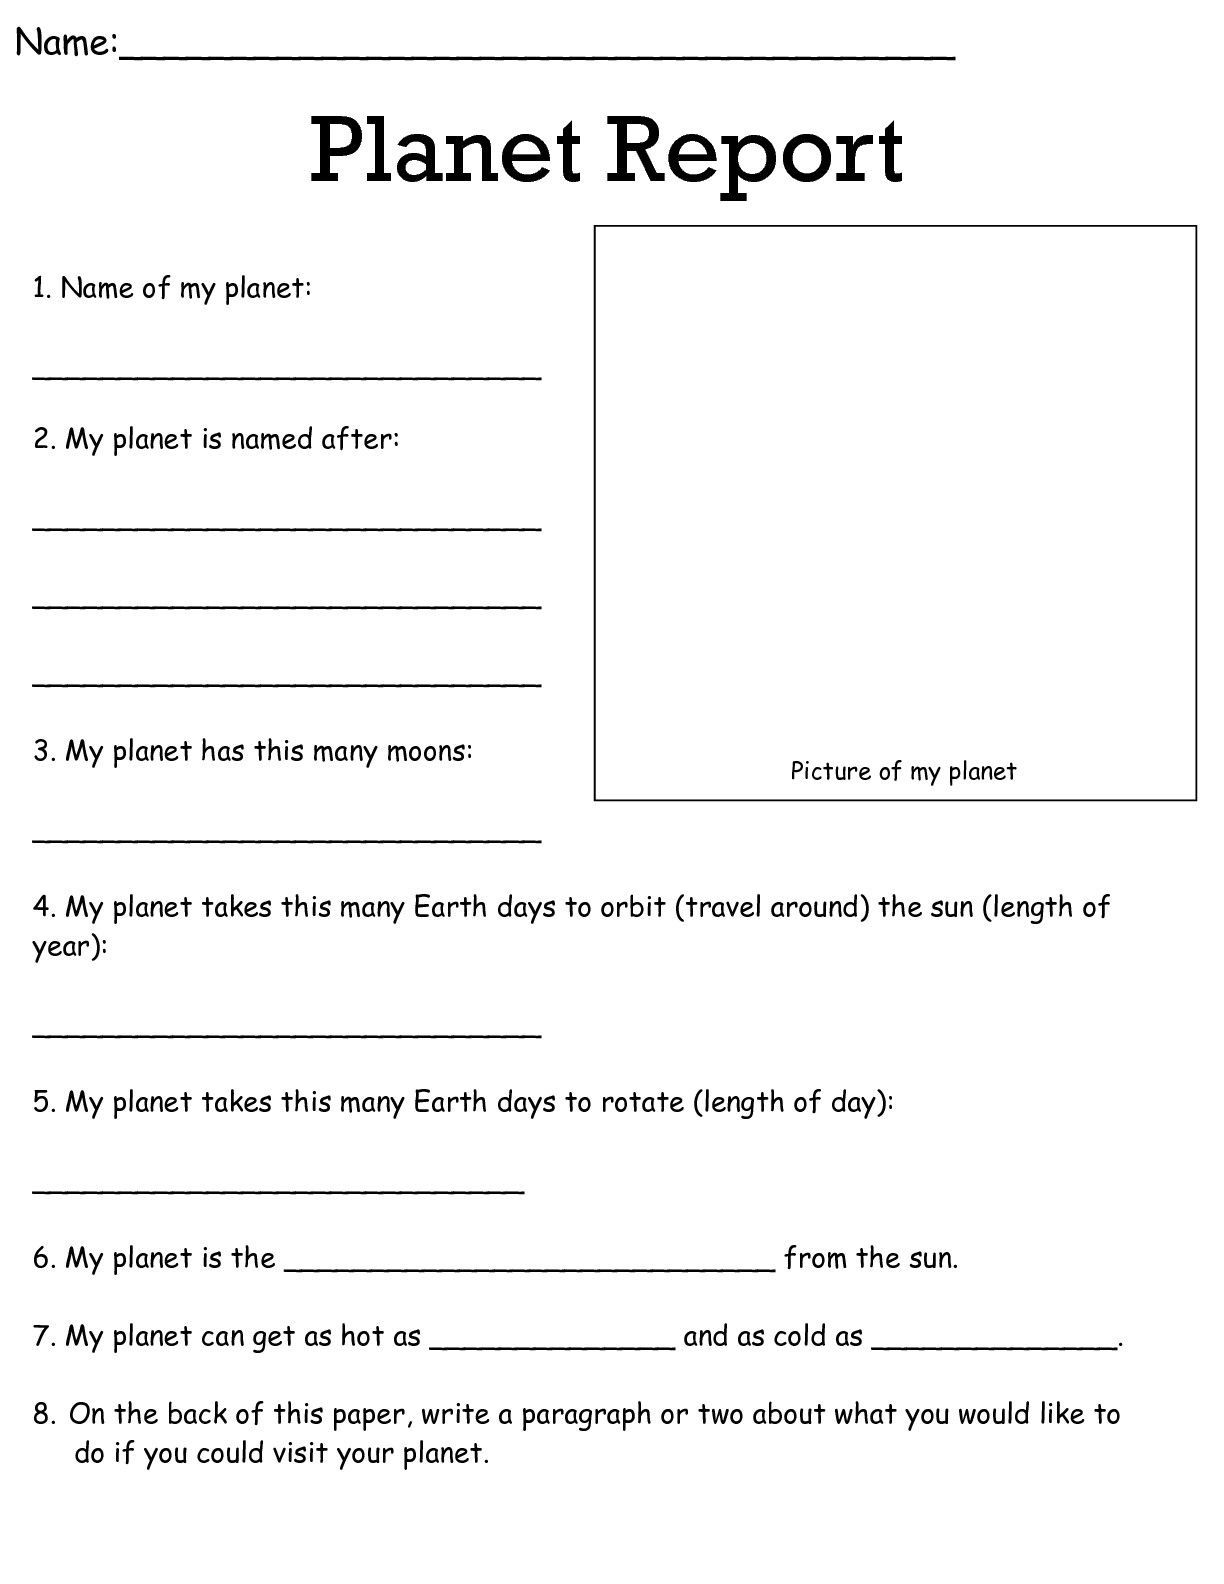 Physical Science Worksheet Conservation Of Energy 2 Answer Key